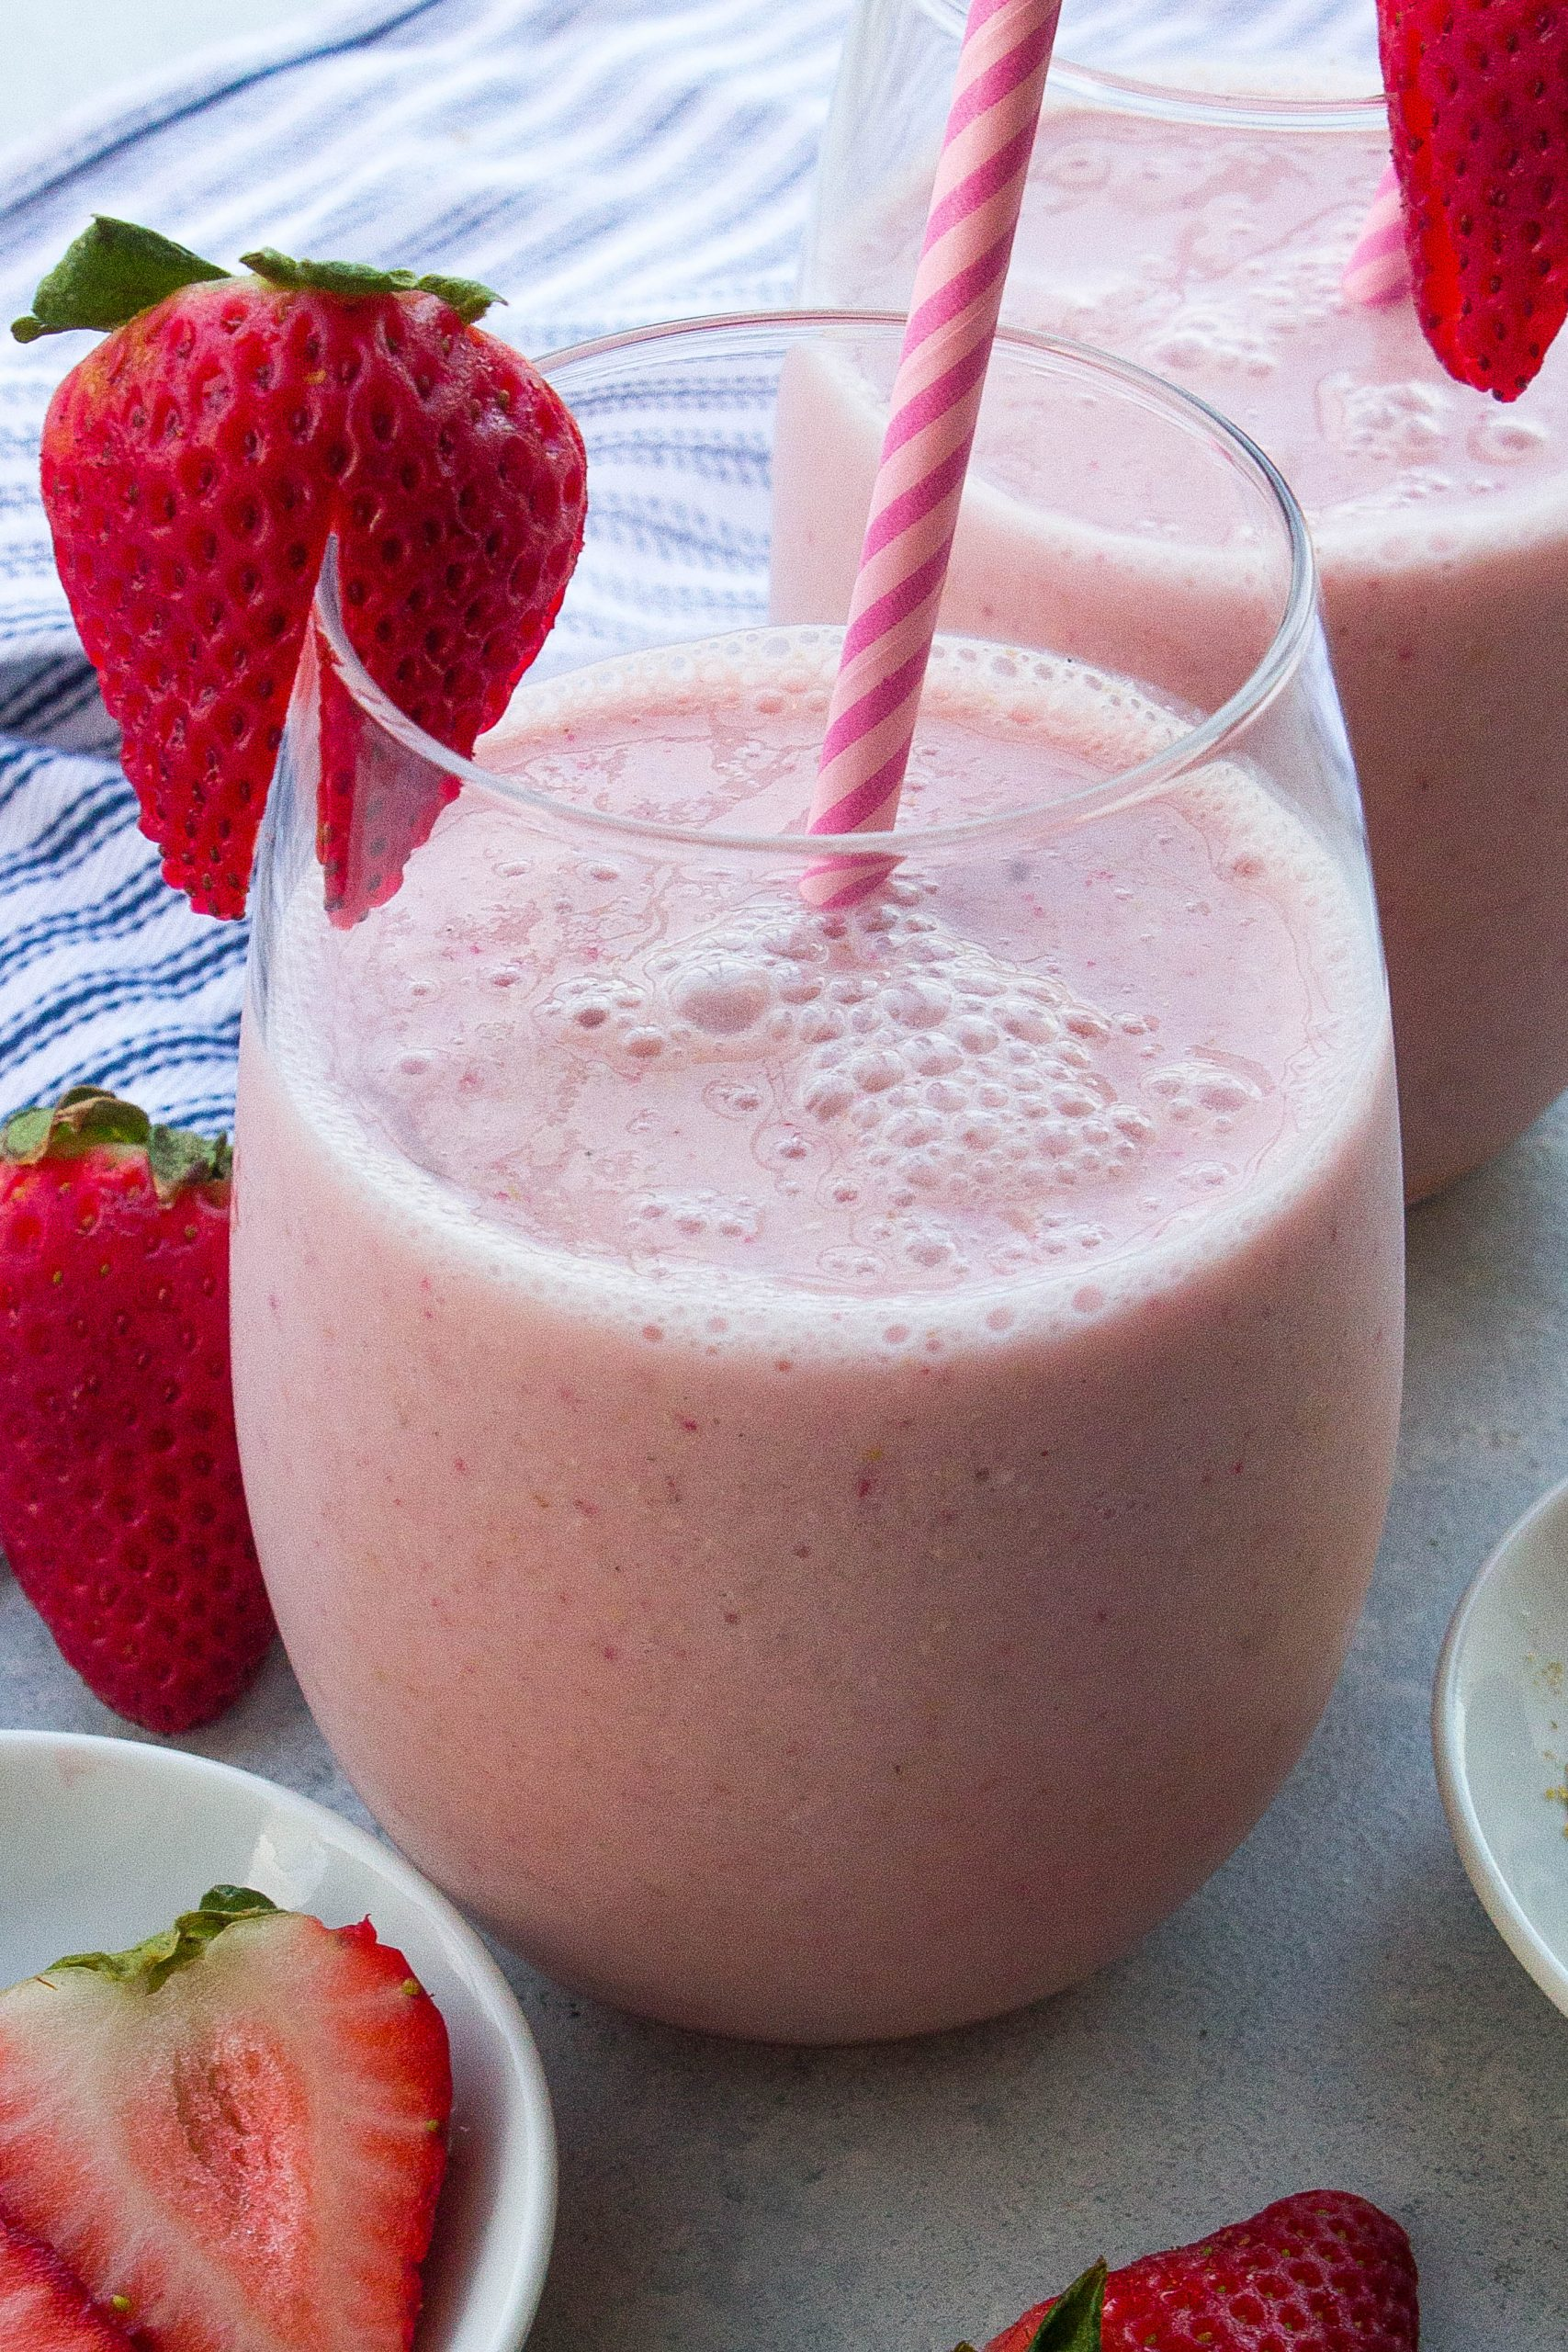 Strawberry Shortcake Protein Smoothie